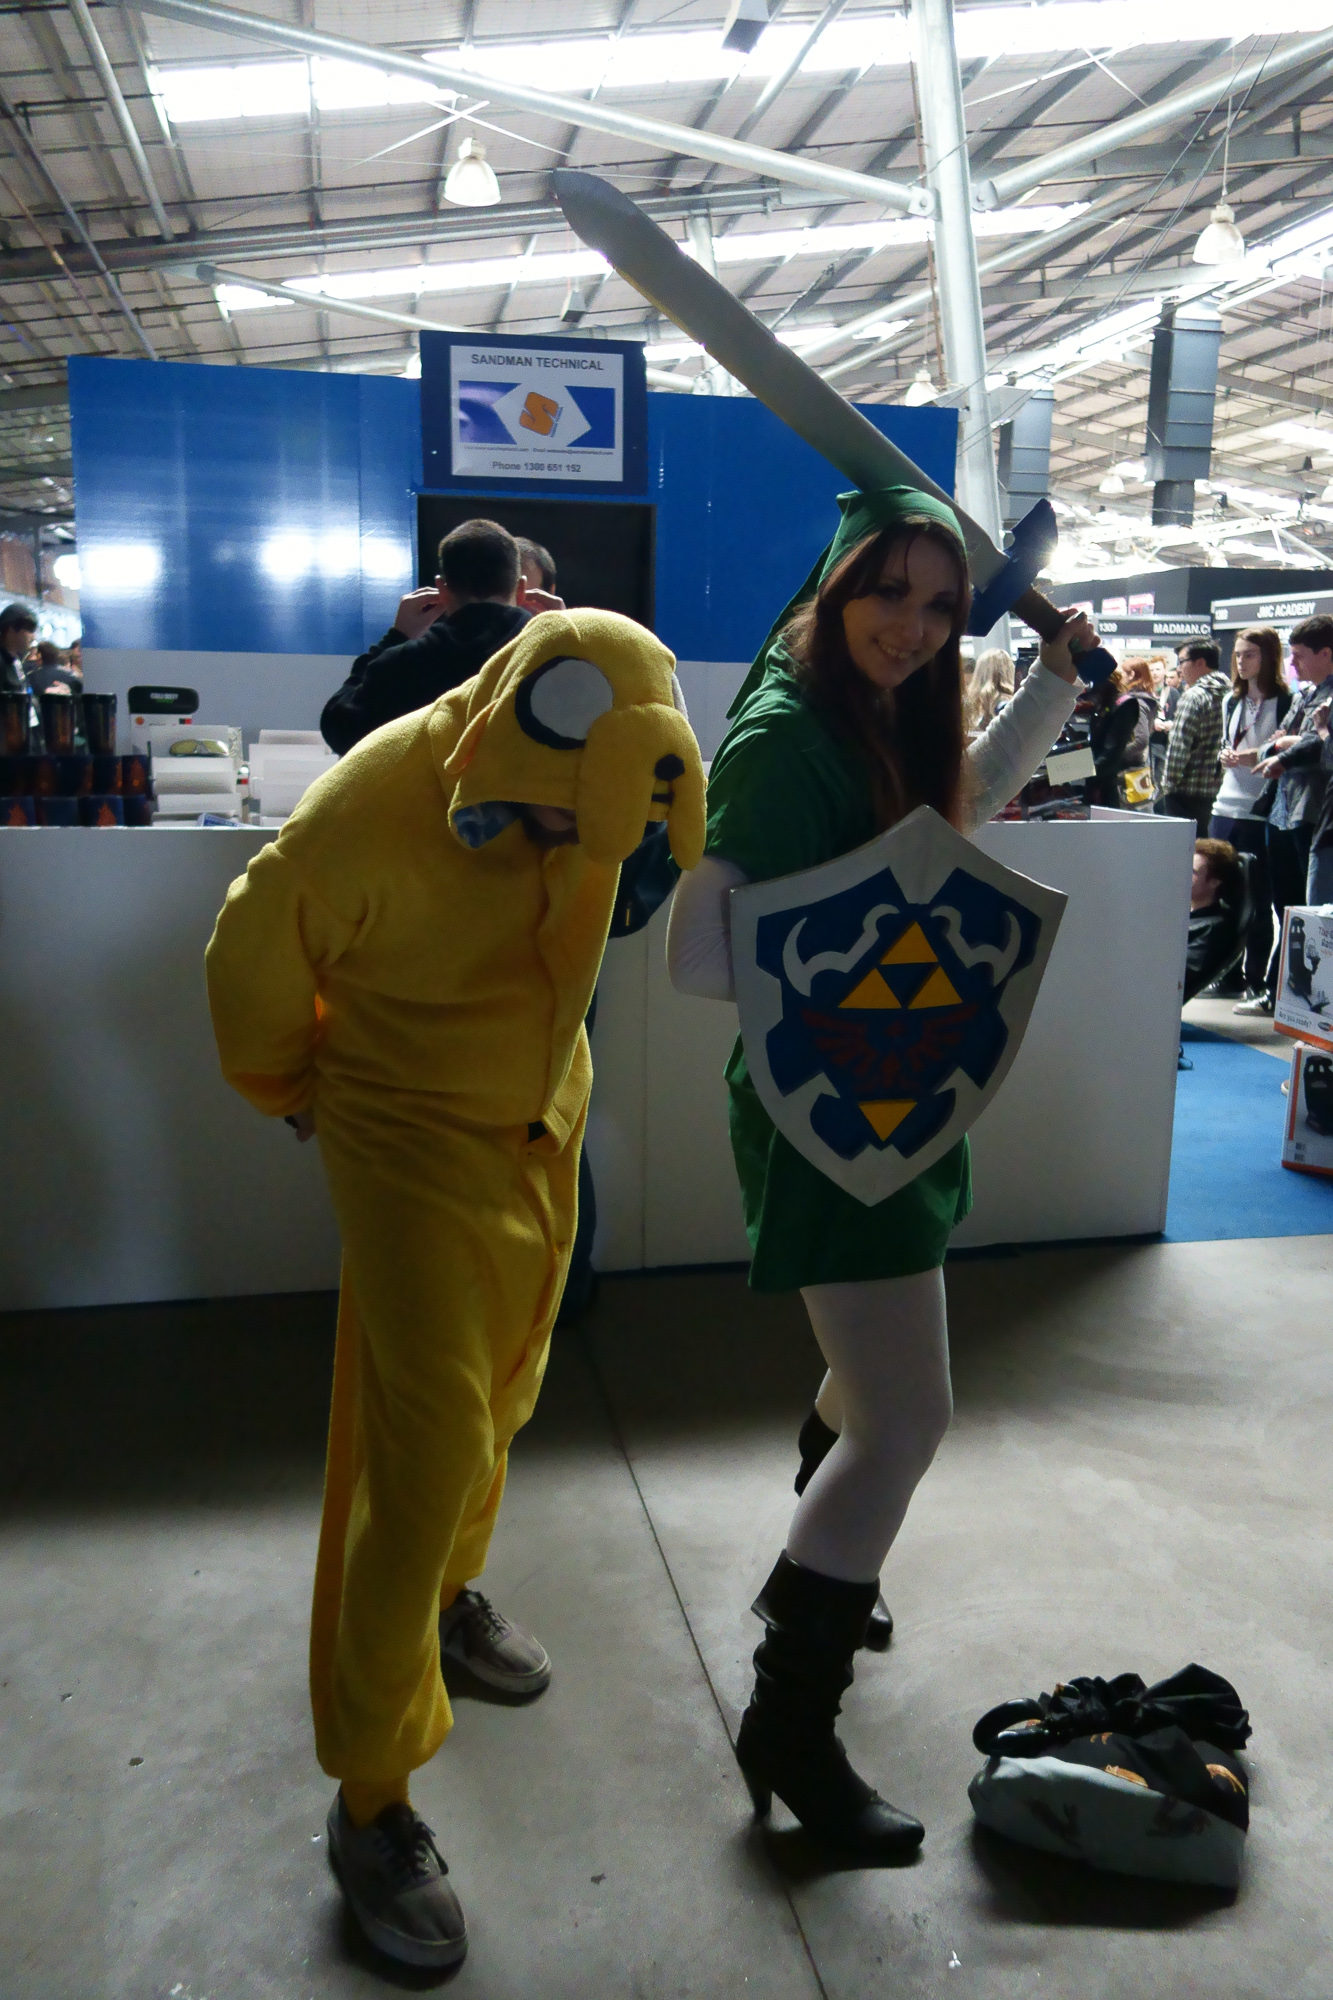 Adventure Time and Link from Zelda, I believe